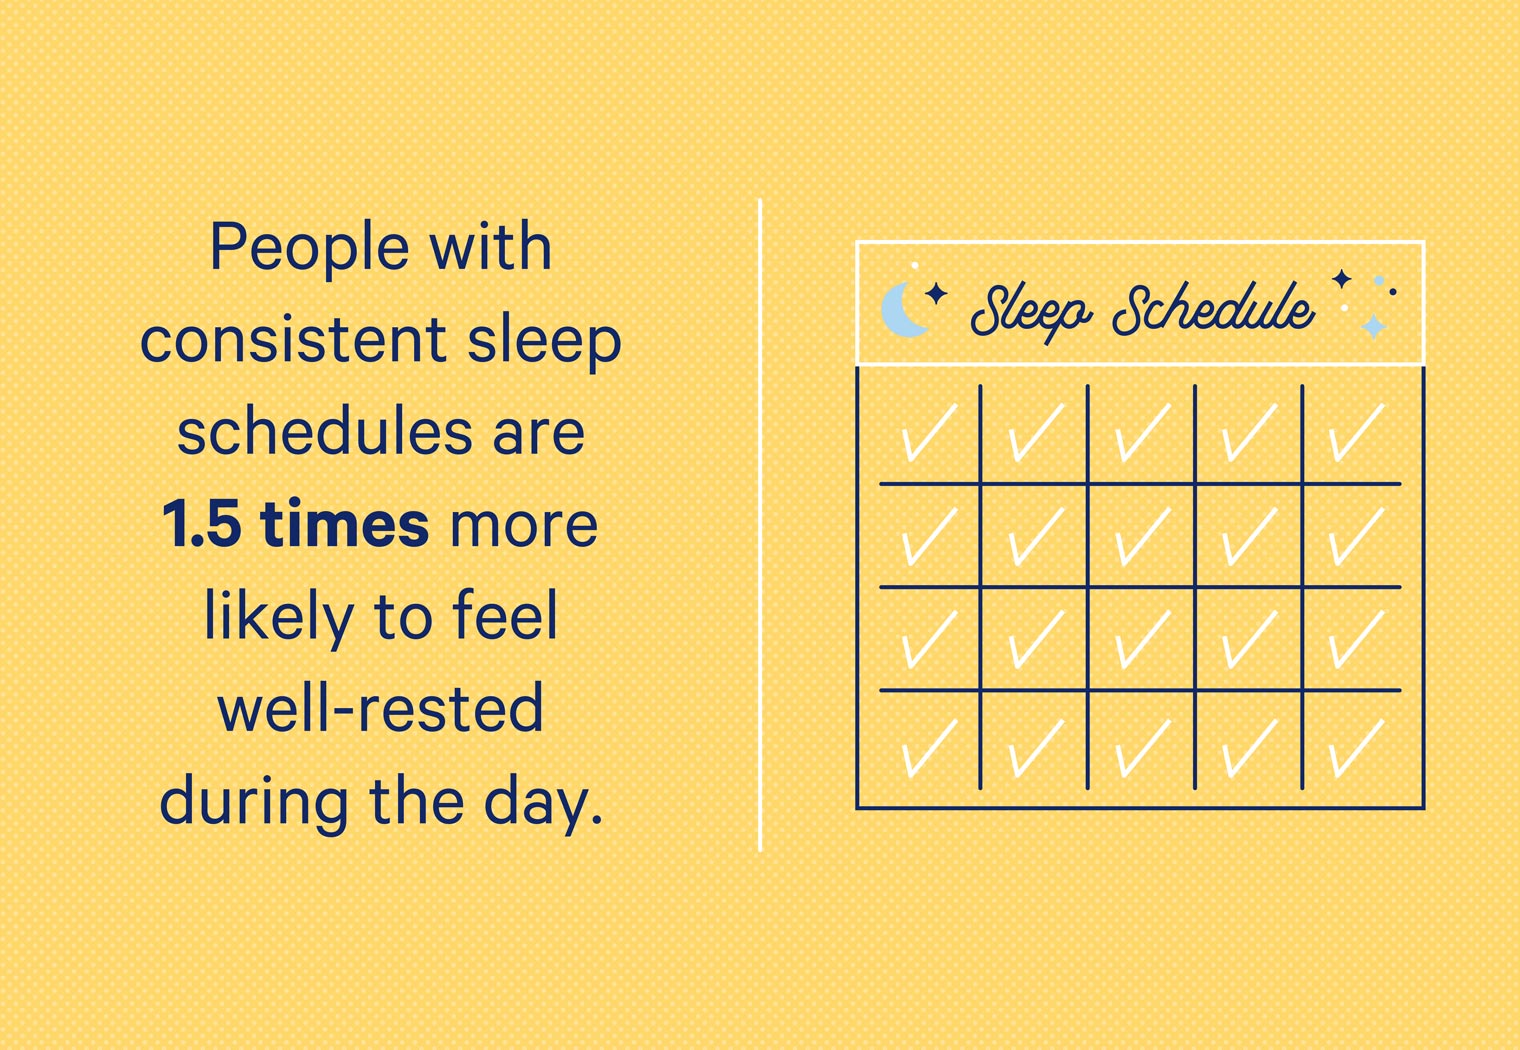 People who follow a consistent sleep schedule are 1.5 times more well-rested during the day.